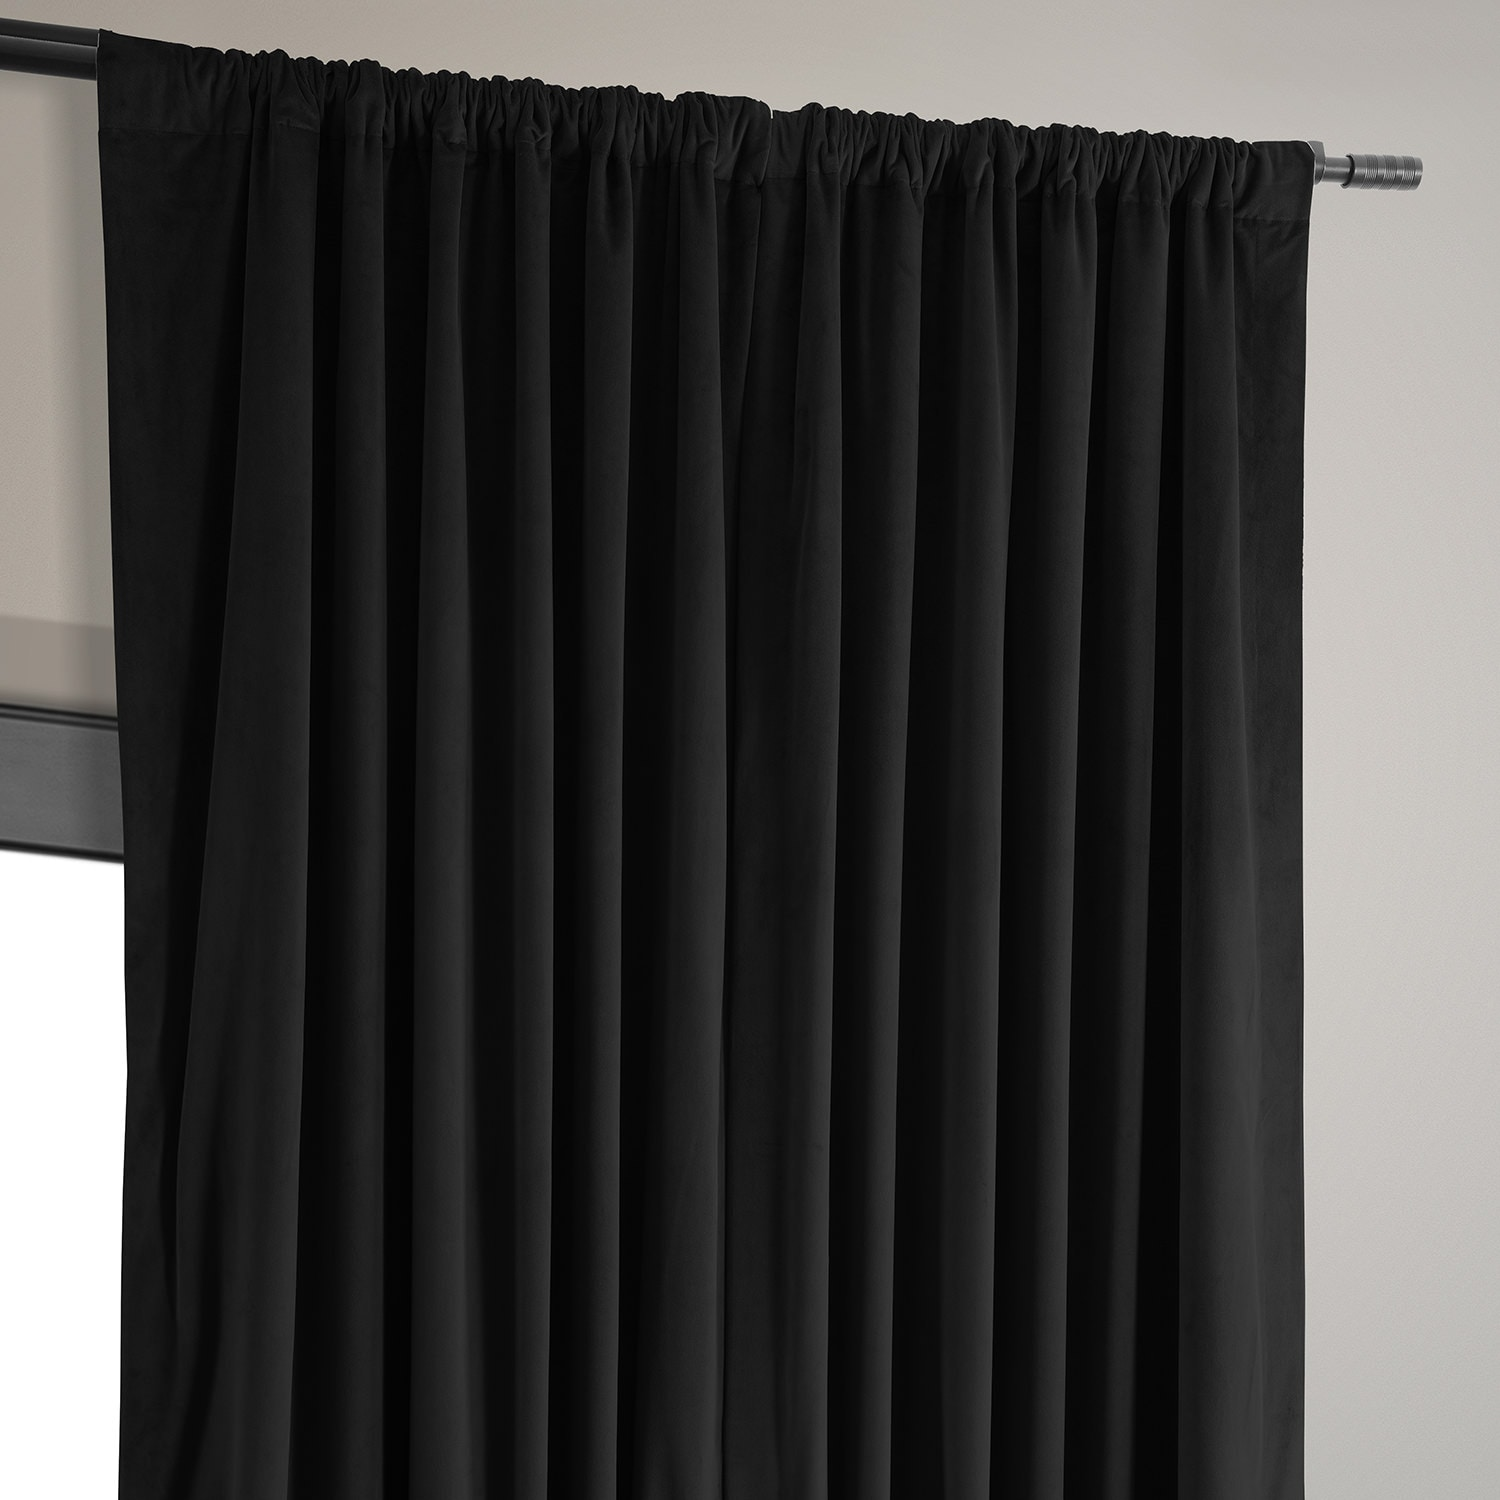 Signature Black Extra Wide Velvet Blackout Pole Pocket Curtain